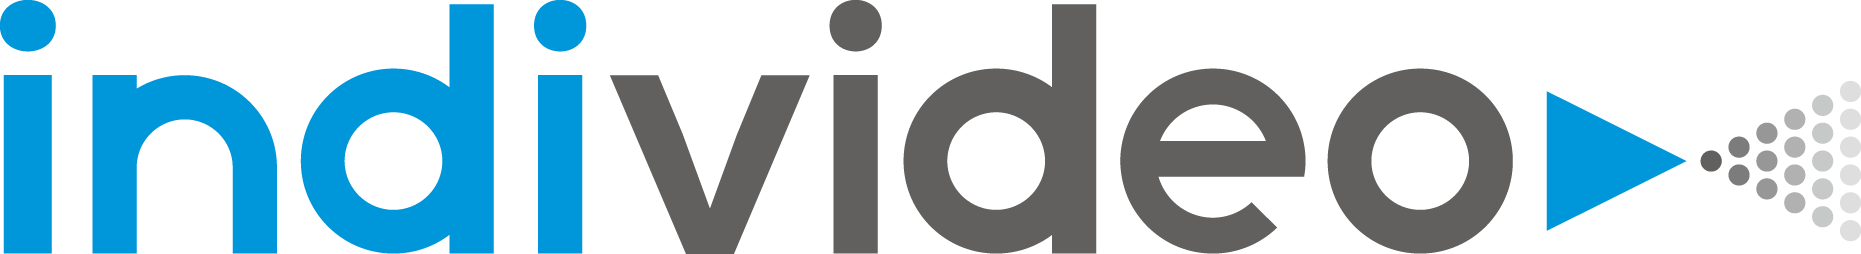 individeo_logo.png